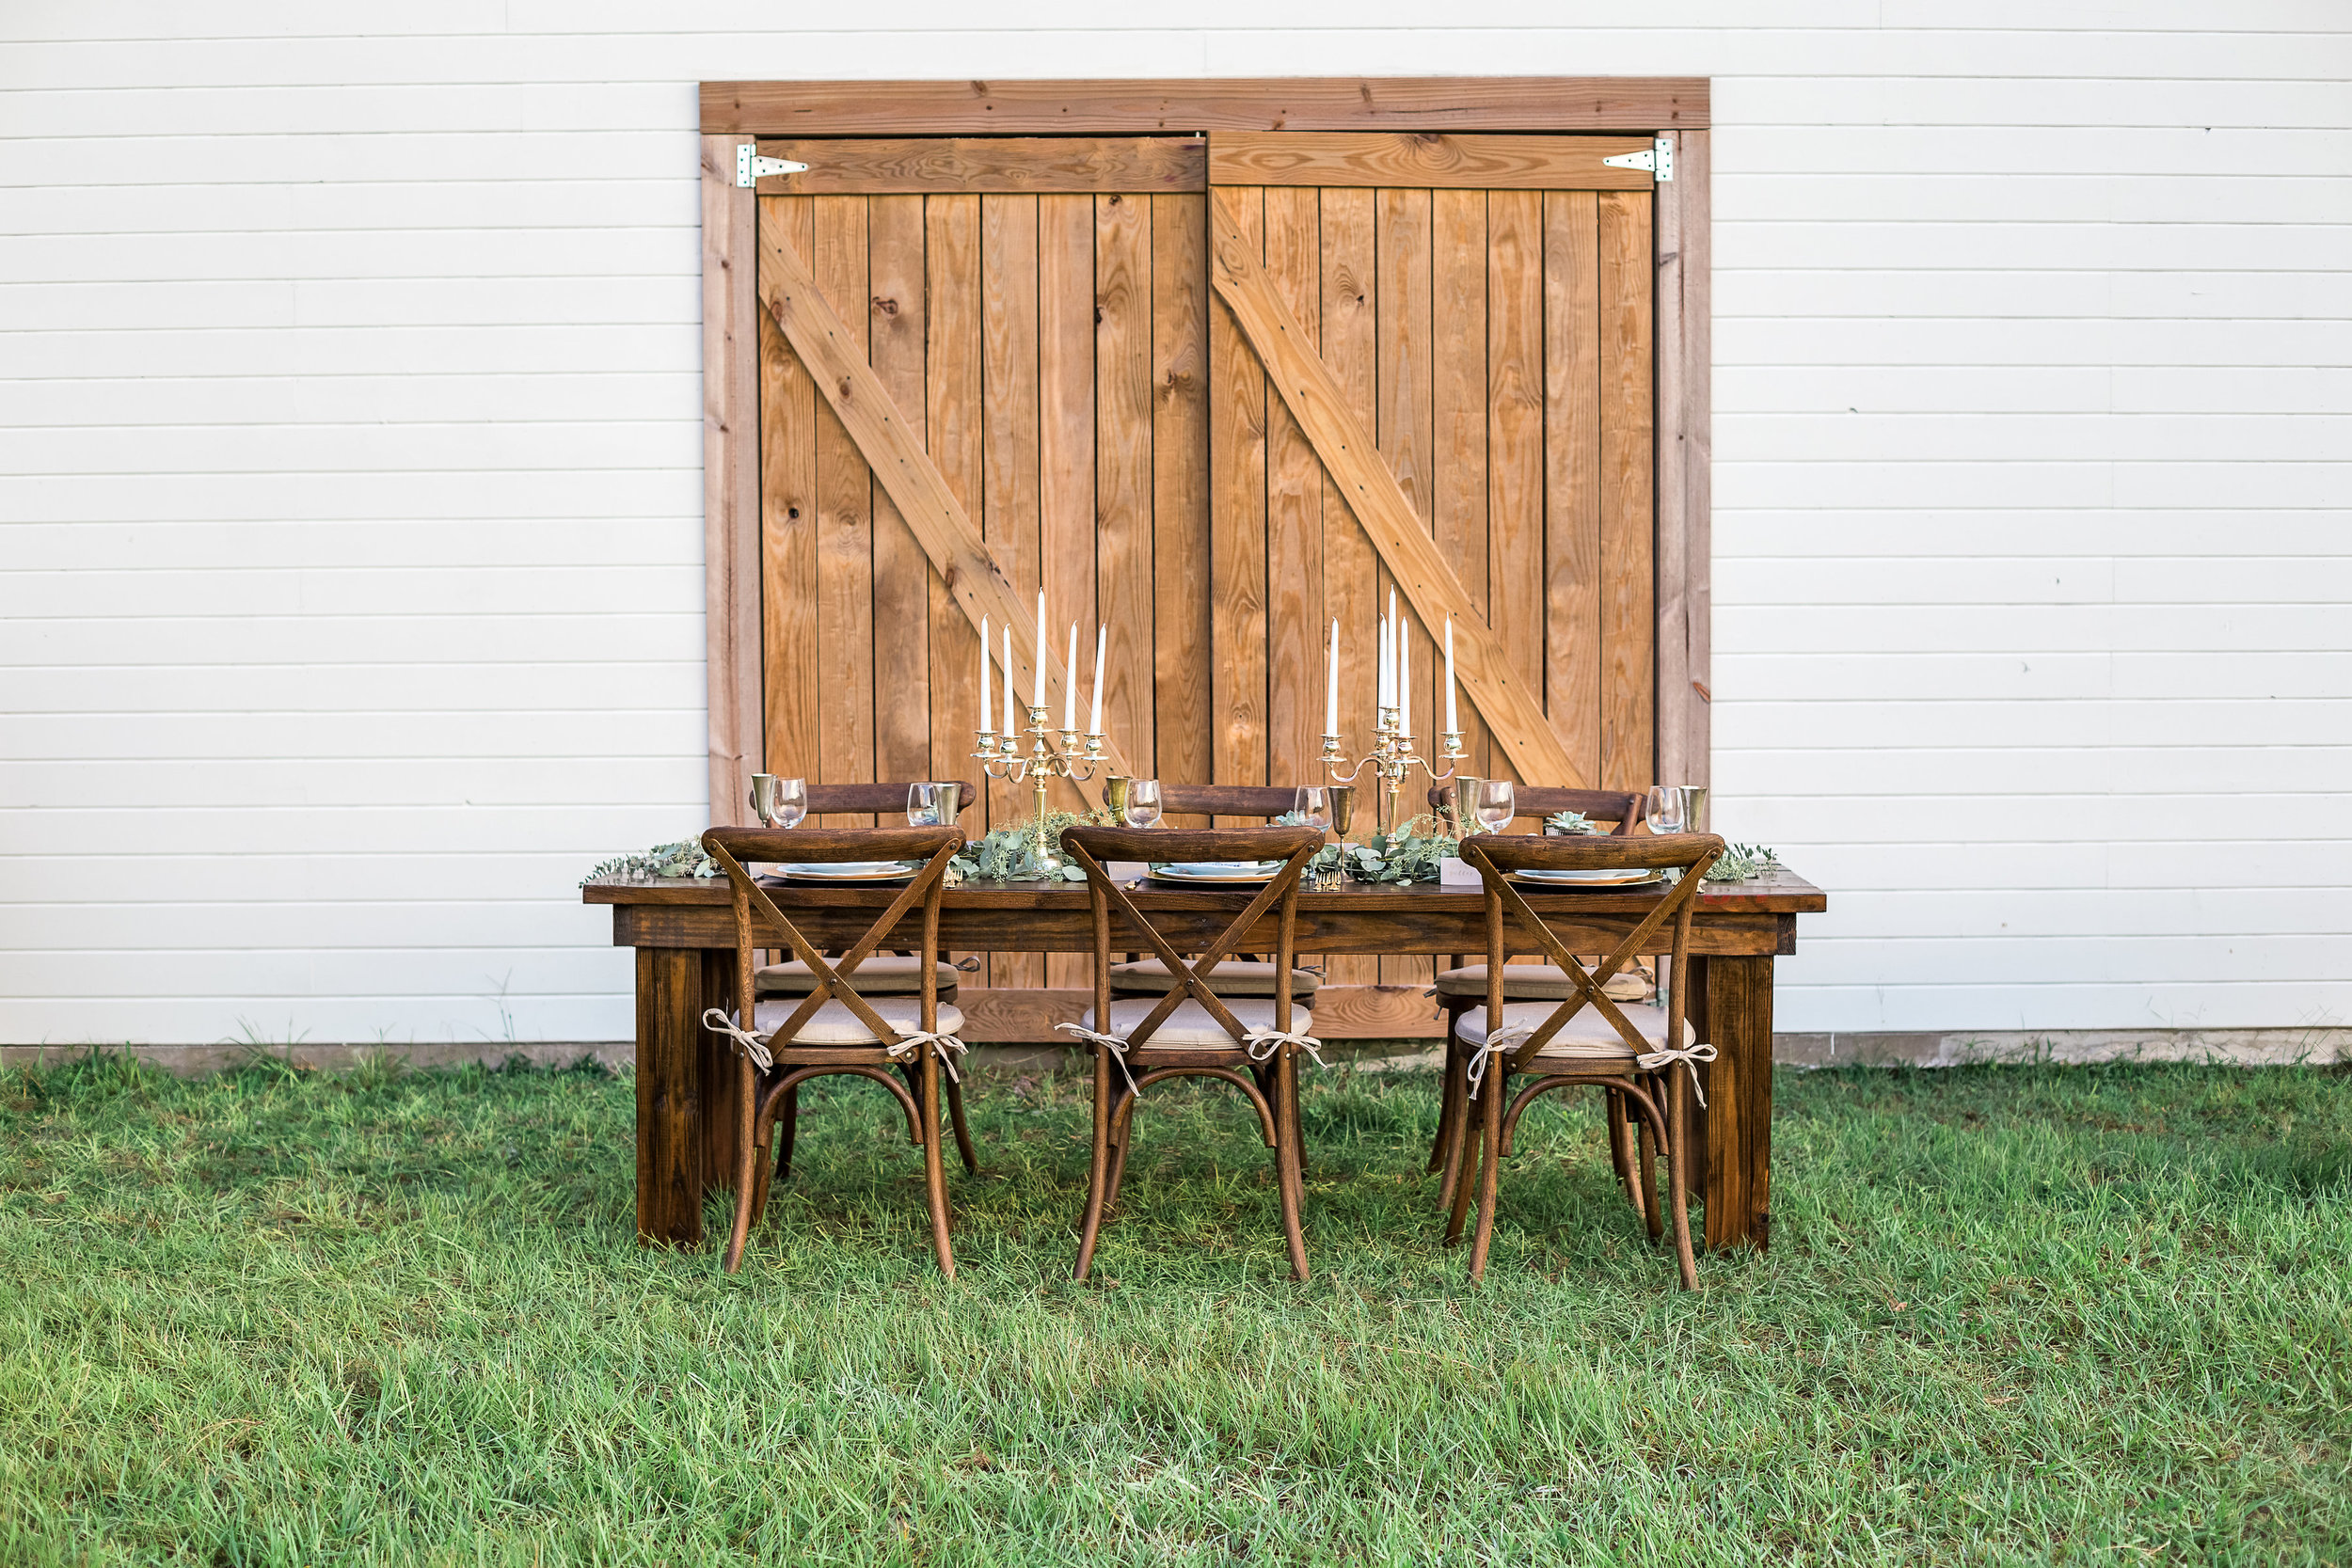 Southern Chairs - Affordable farm table